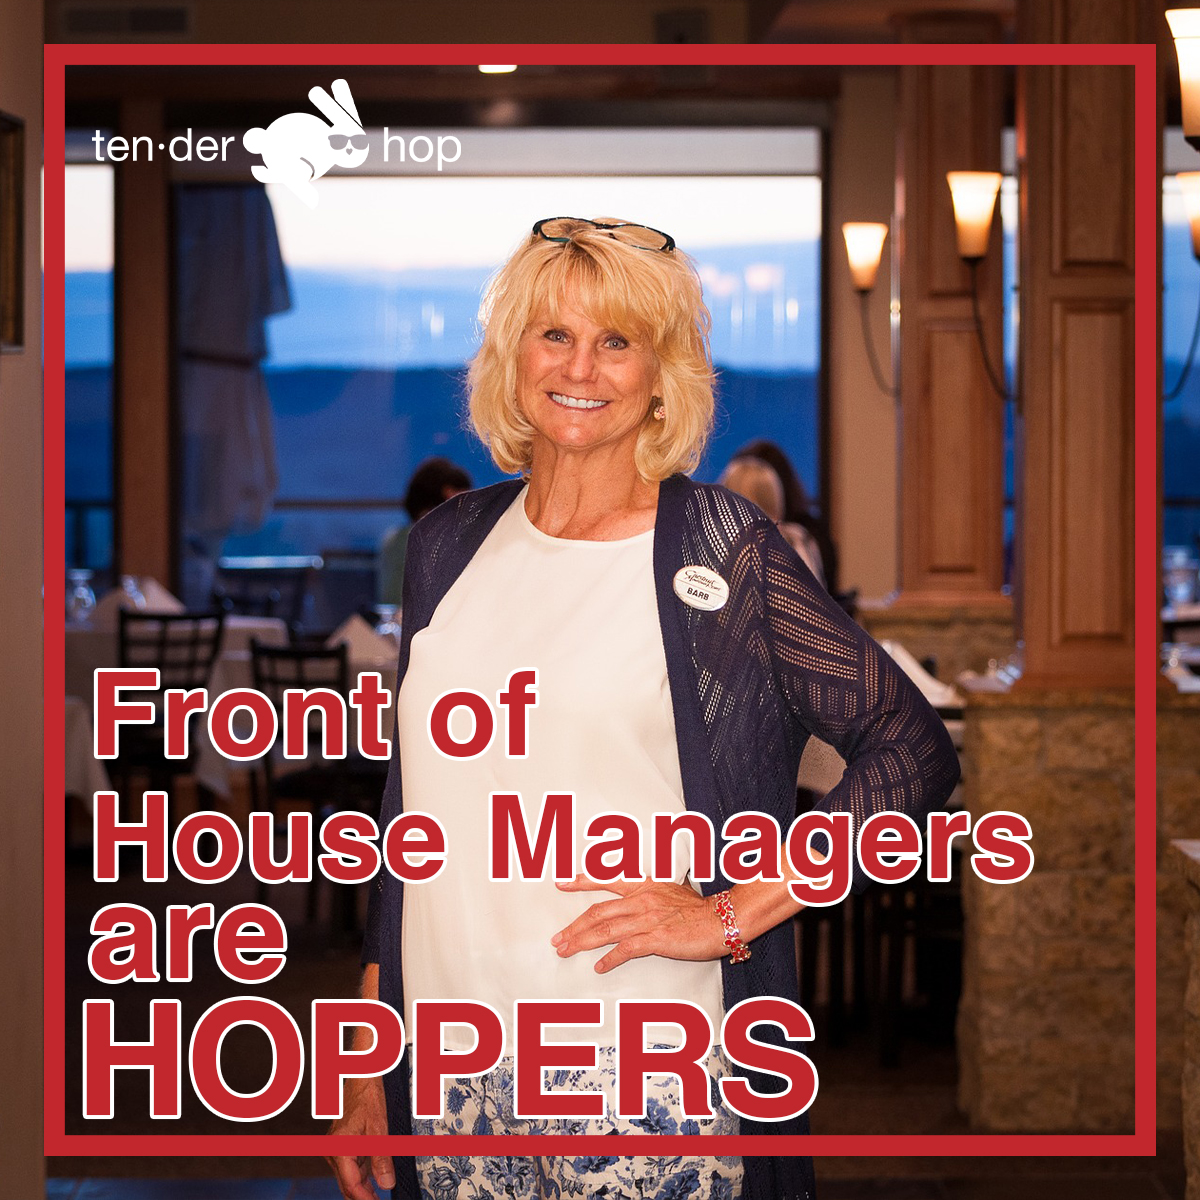 Front of House Managers are HOPPERS